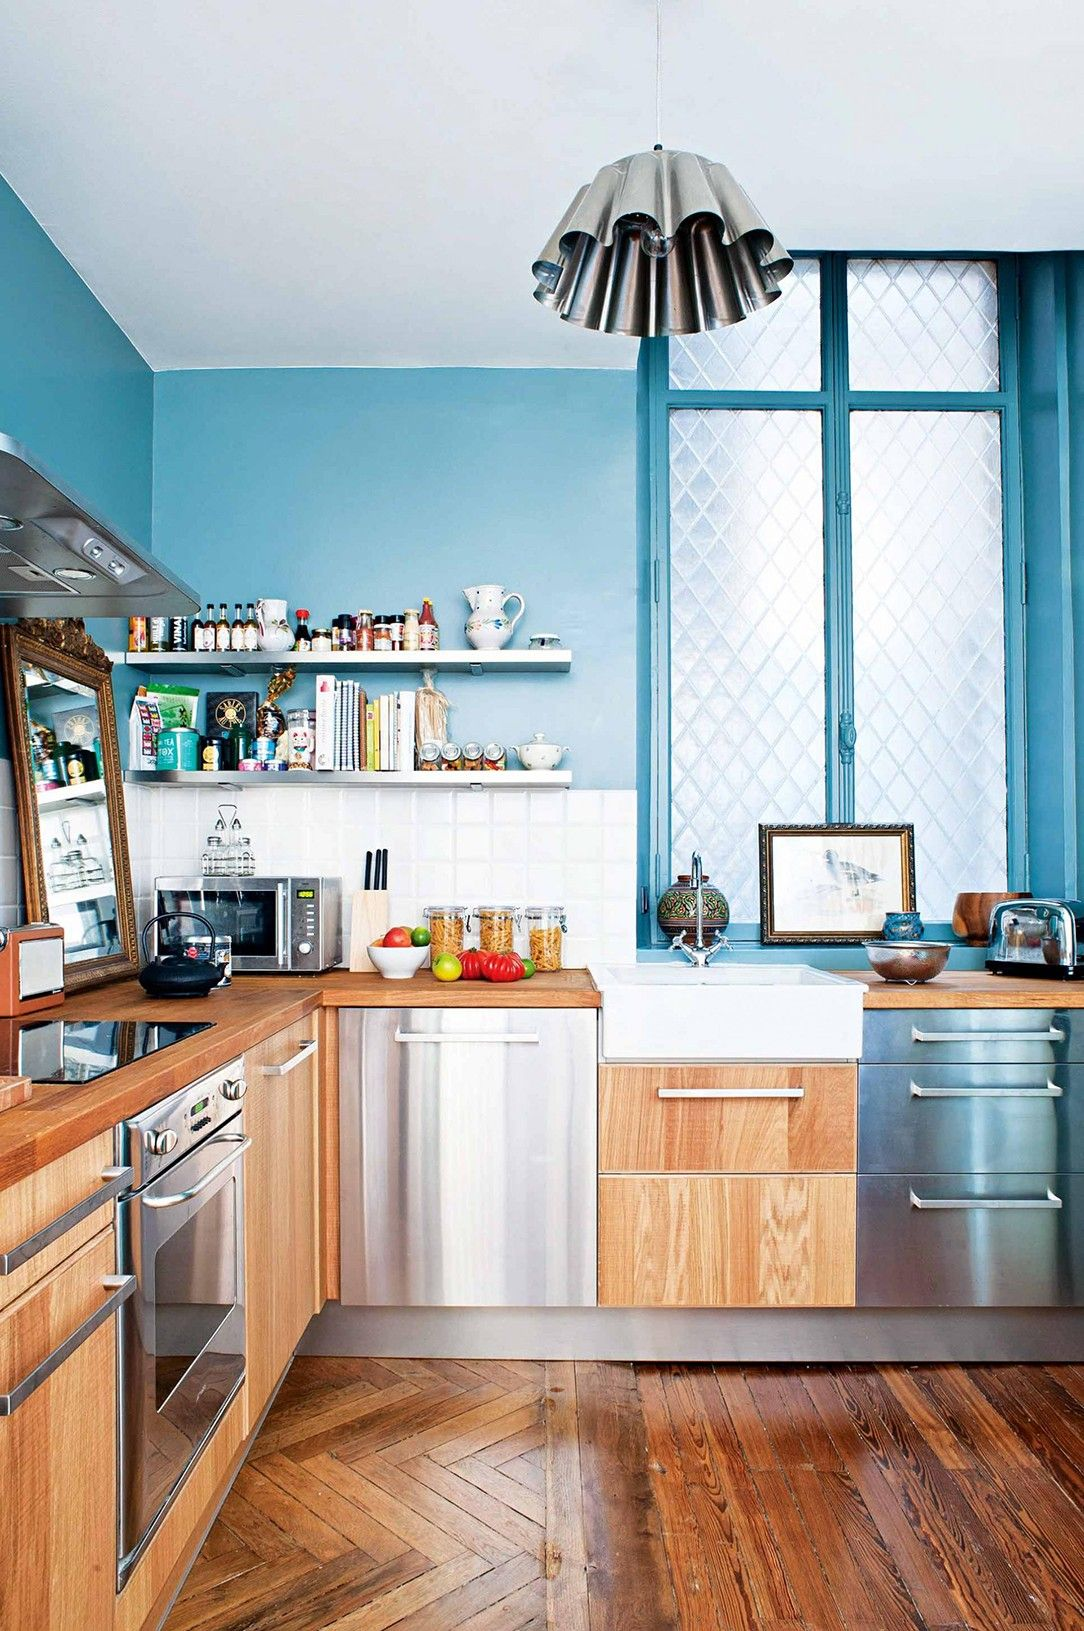 The 8 Best Kitchen Paint Colors According To The Pros French